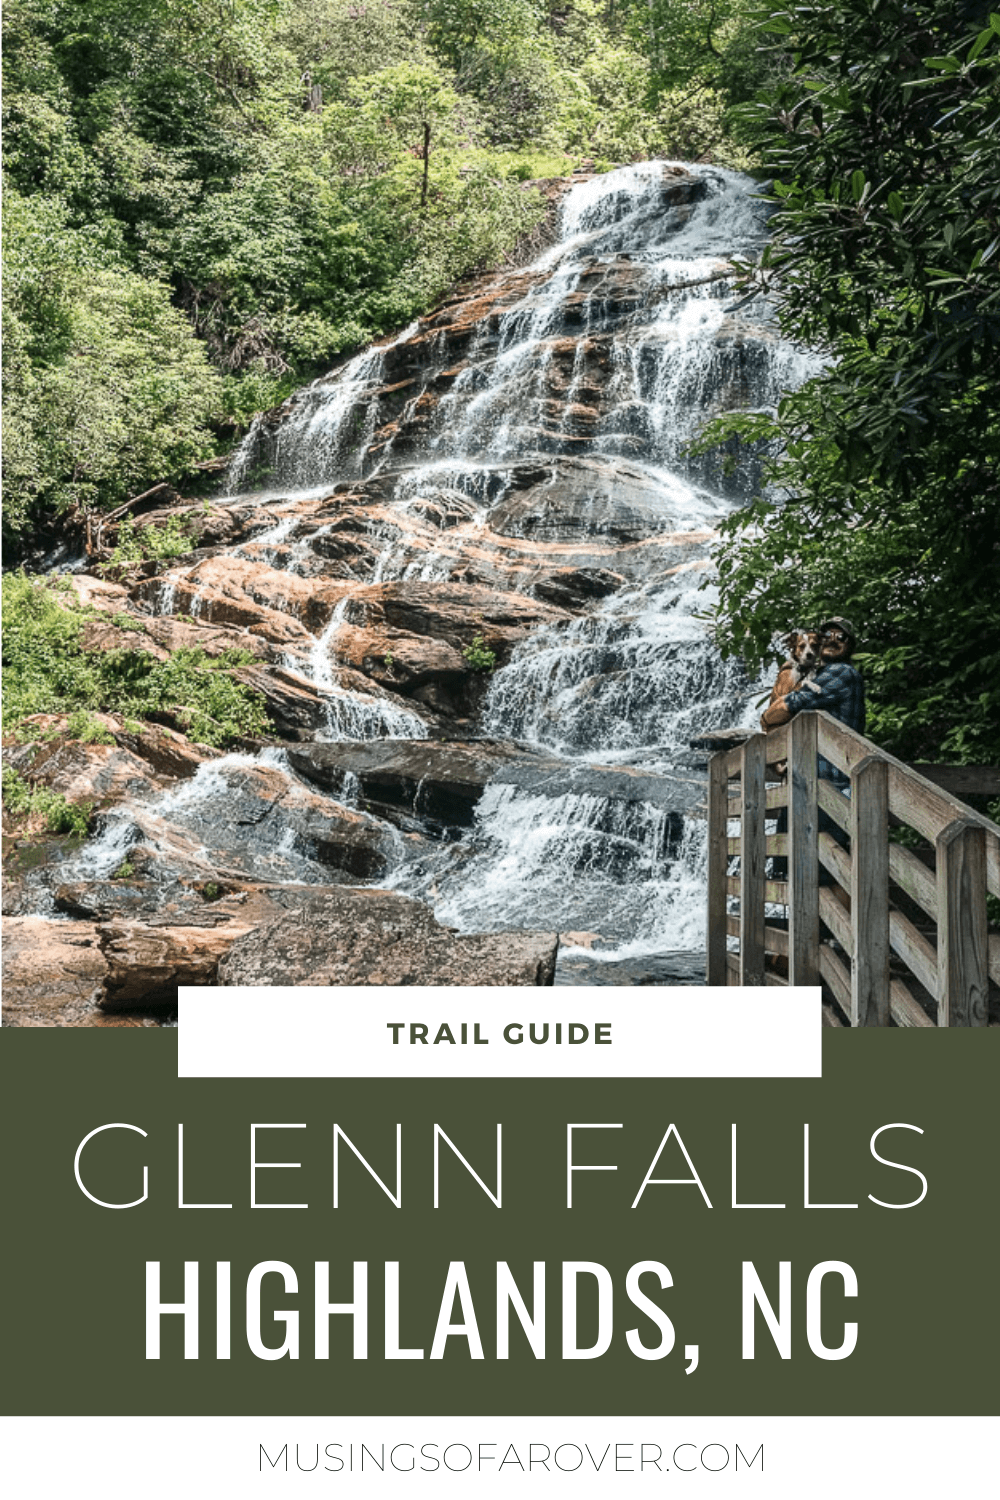 The Glenn Falls Trail located outside of Highlands NC is a moderately difficult hike you should add to your trip! This hike will give you some amazing views of the cascades of the Glenn Falls as you wind down to the hillside to 3 different viewpoints. And since it's less than 2 hours away fro Greenville, SC, it makes a wonderful day trip.